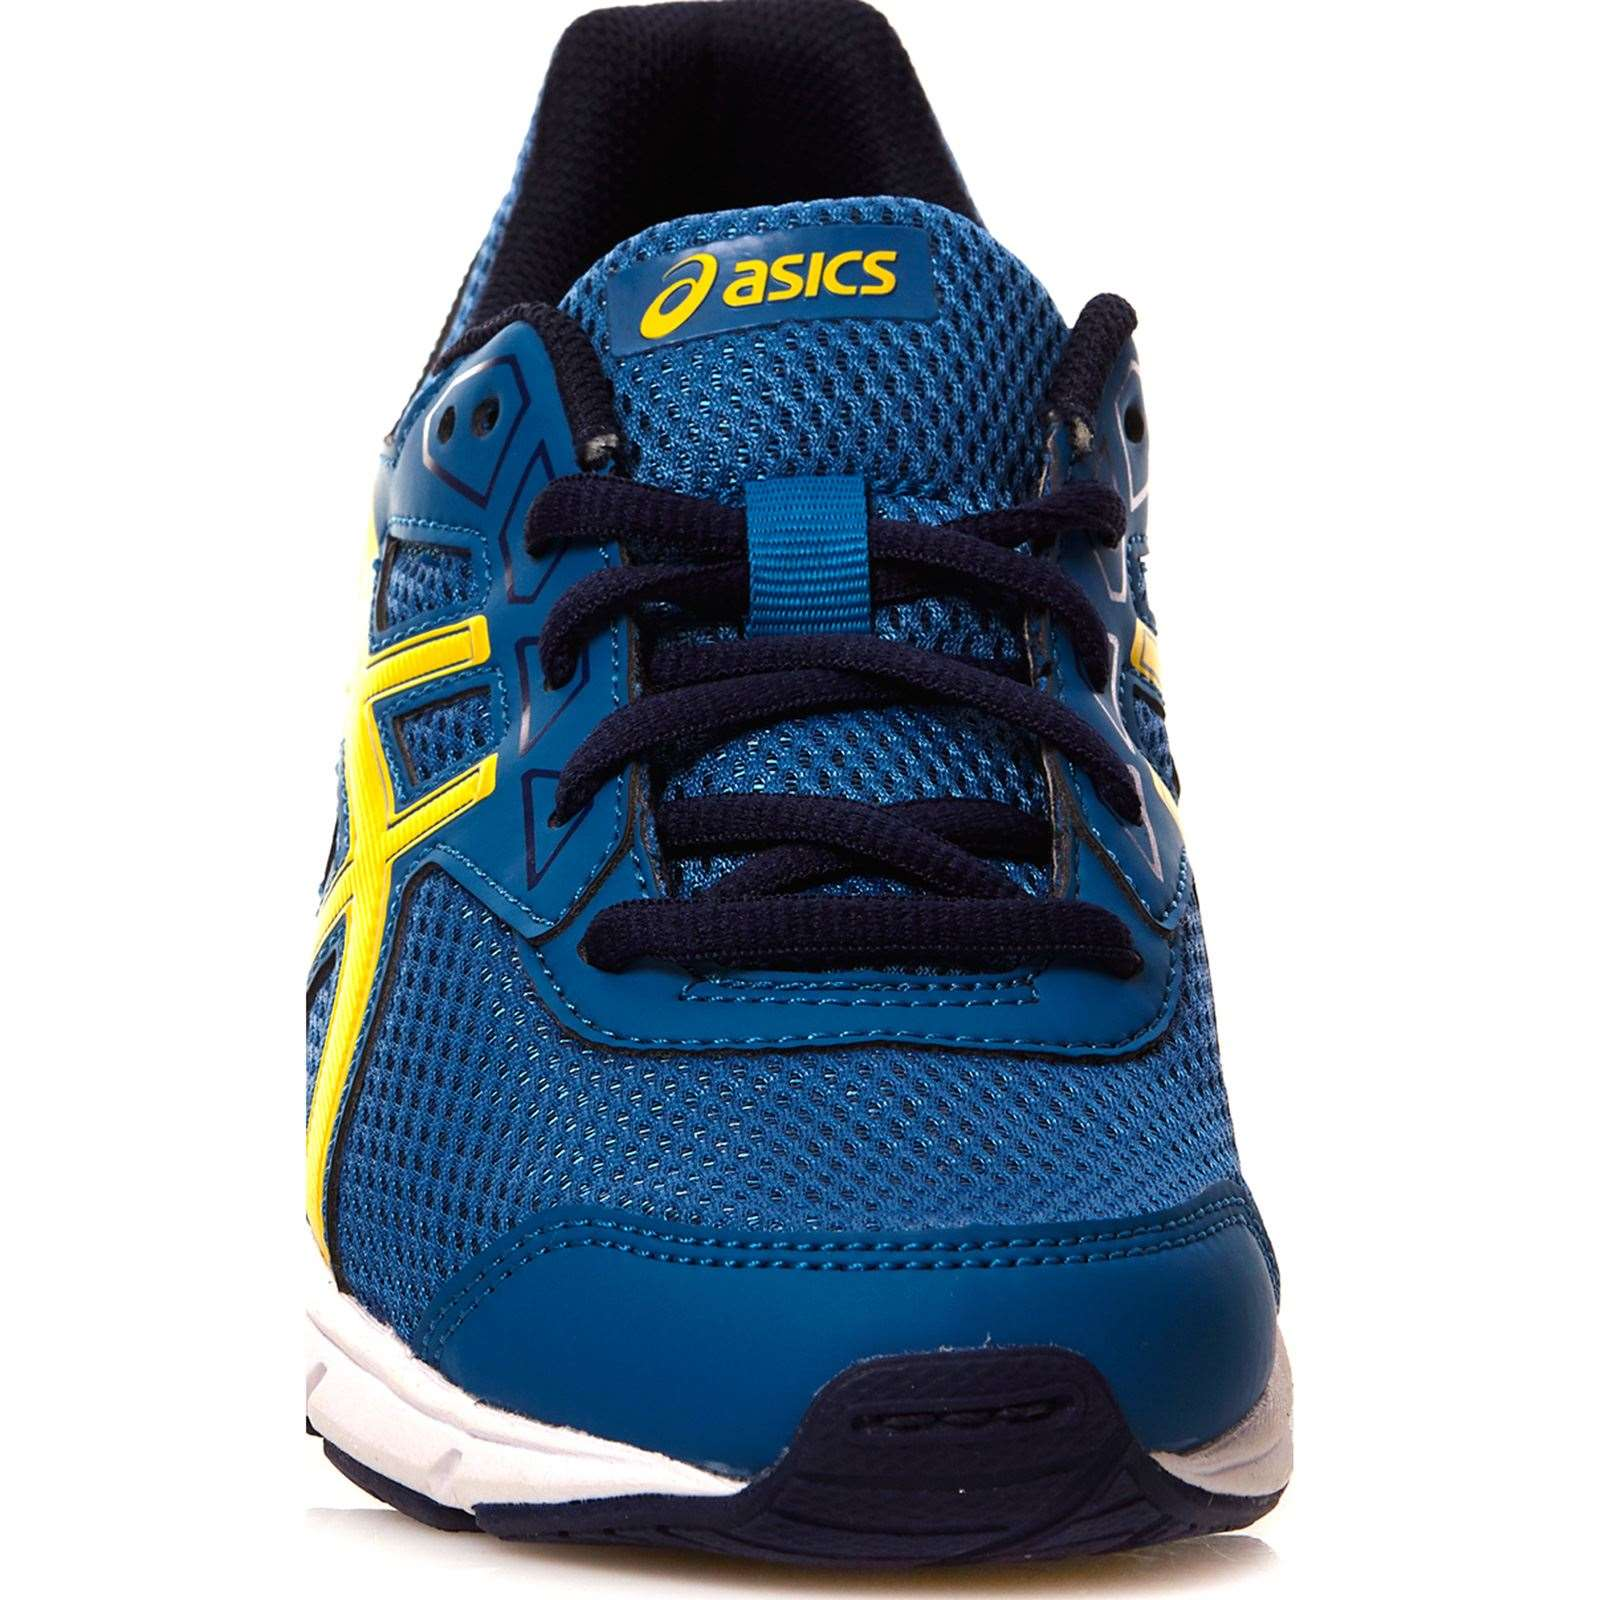 asics chaussures de running bleu et jaune brandalley. Black Bedroom Furniture Sets. Home Design Ideas